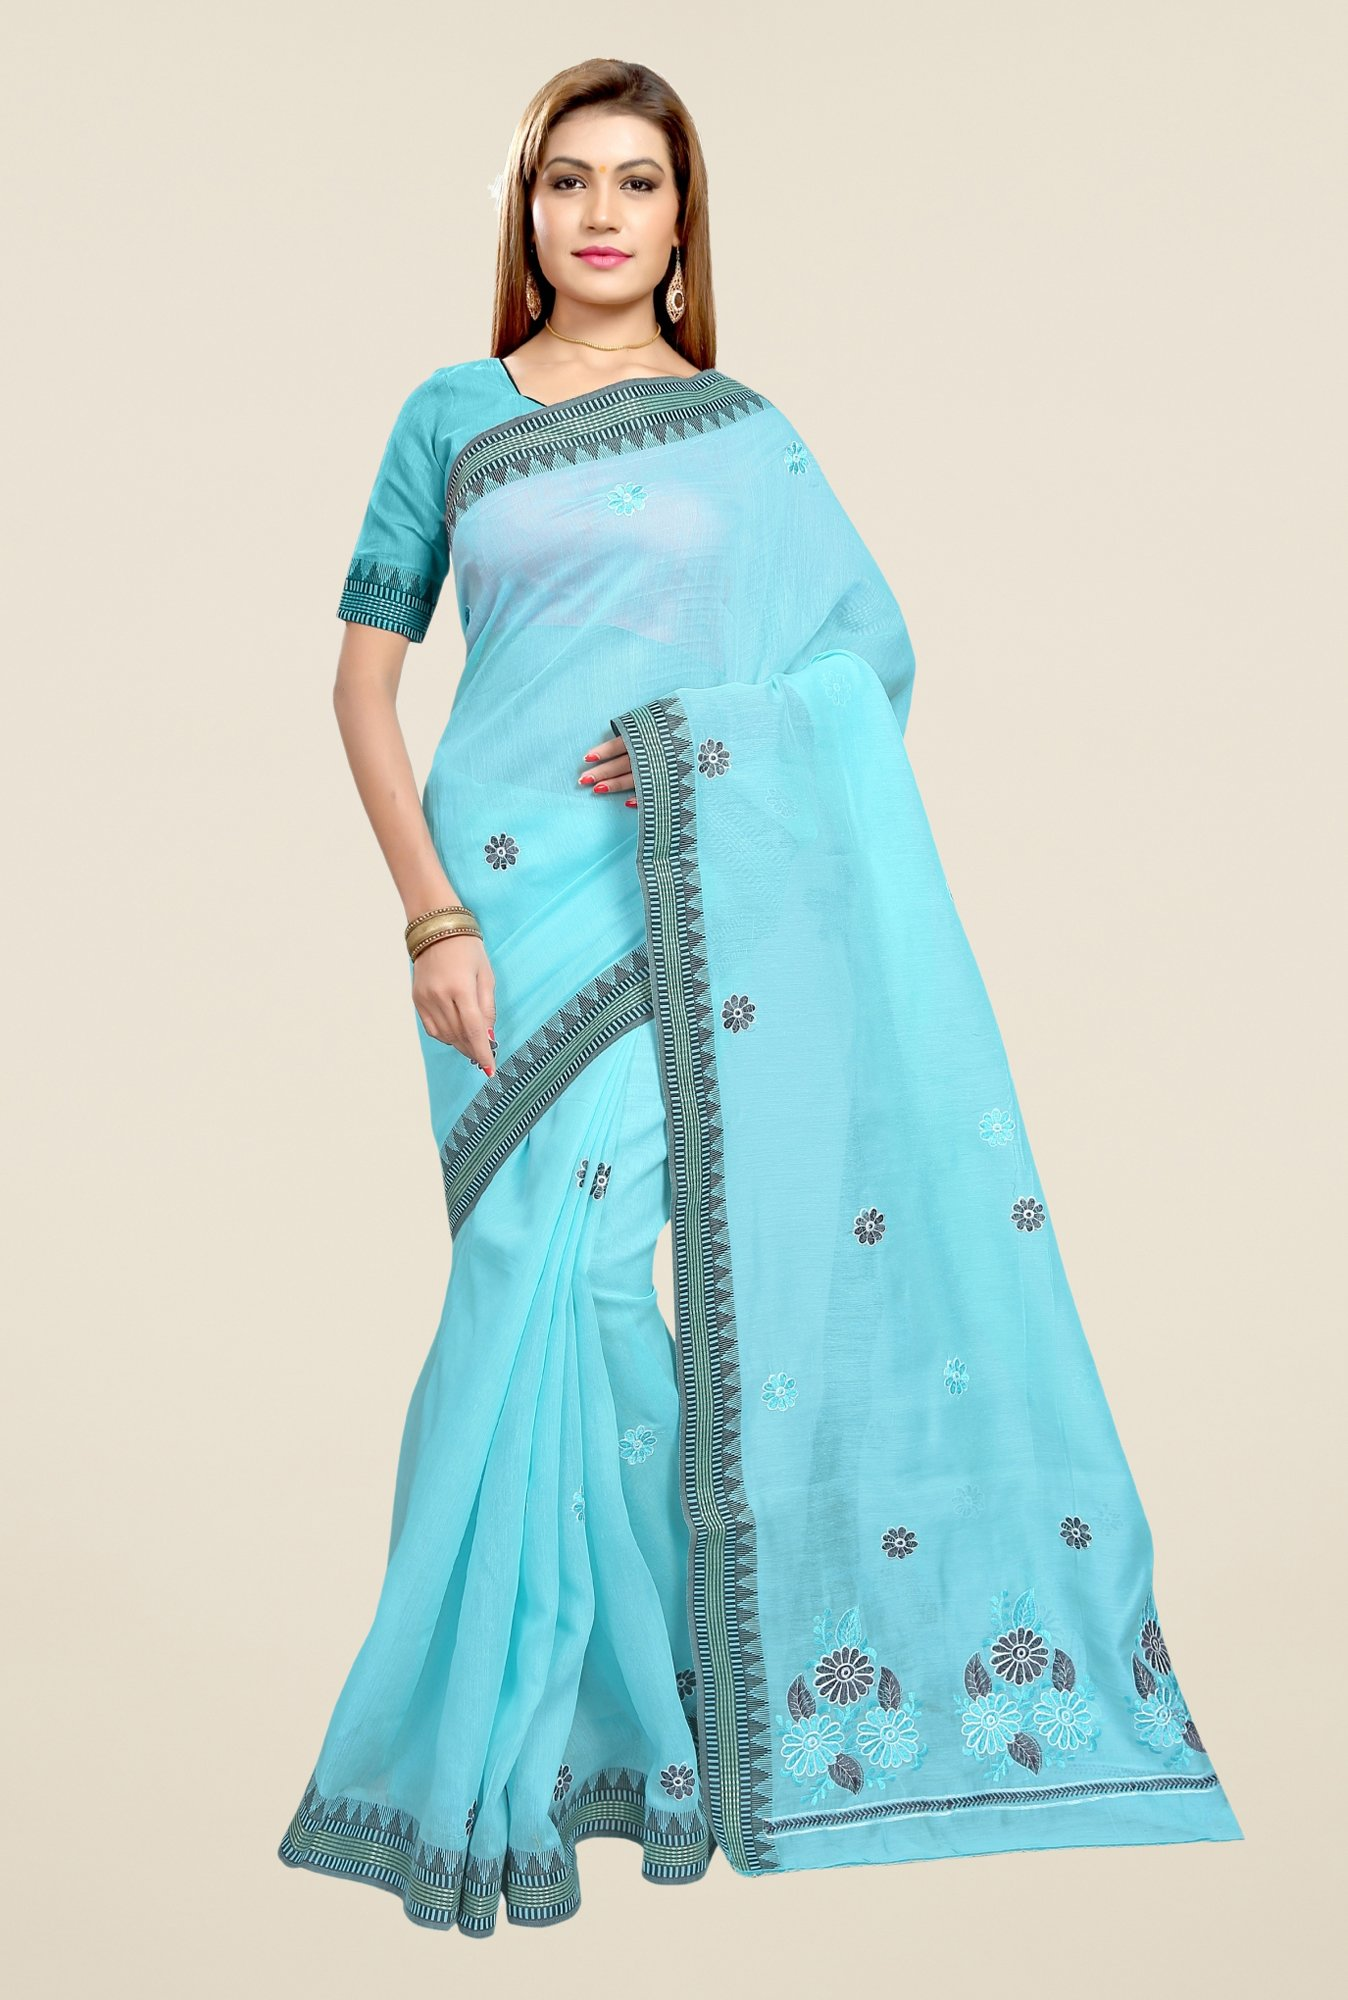 Triveni Sky Blue Embroidered Blended Cotton Saree